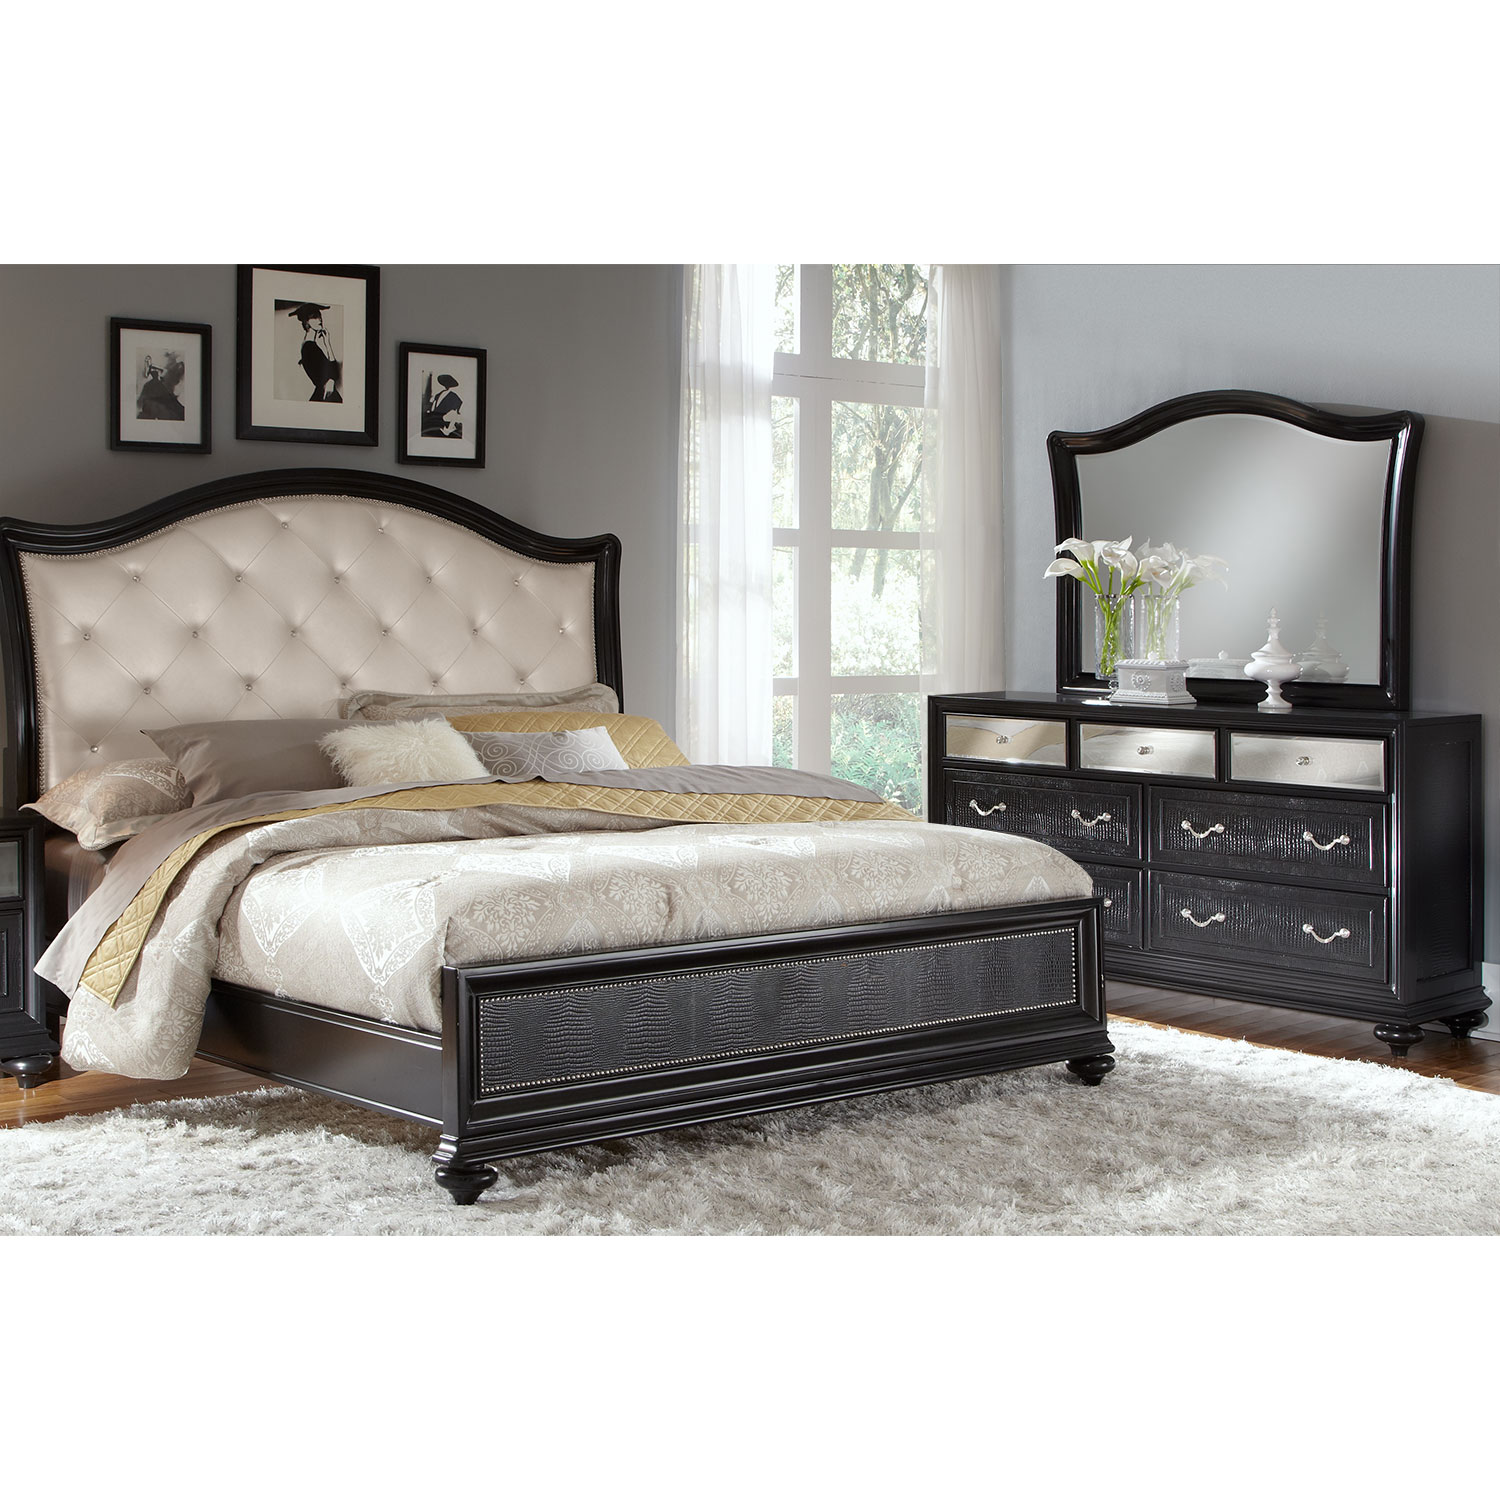 Marilyn 5 Piece King Bedroom Set Ebony